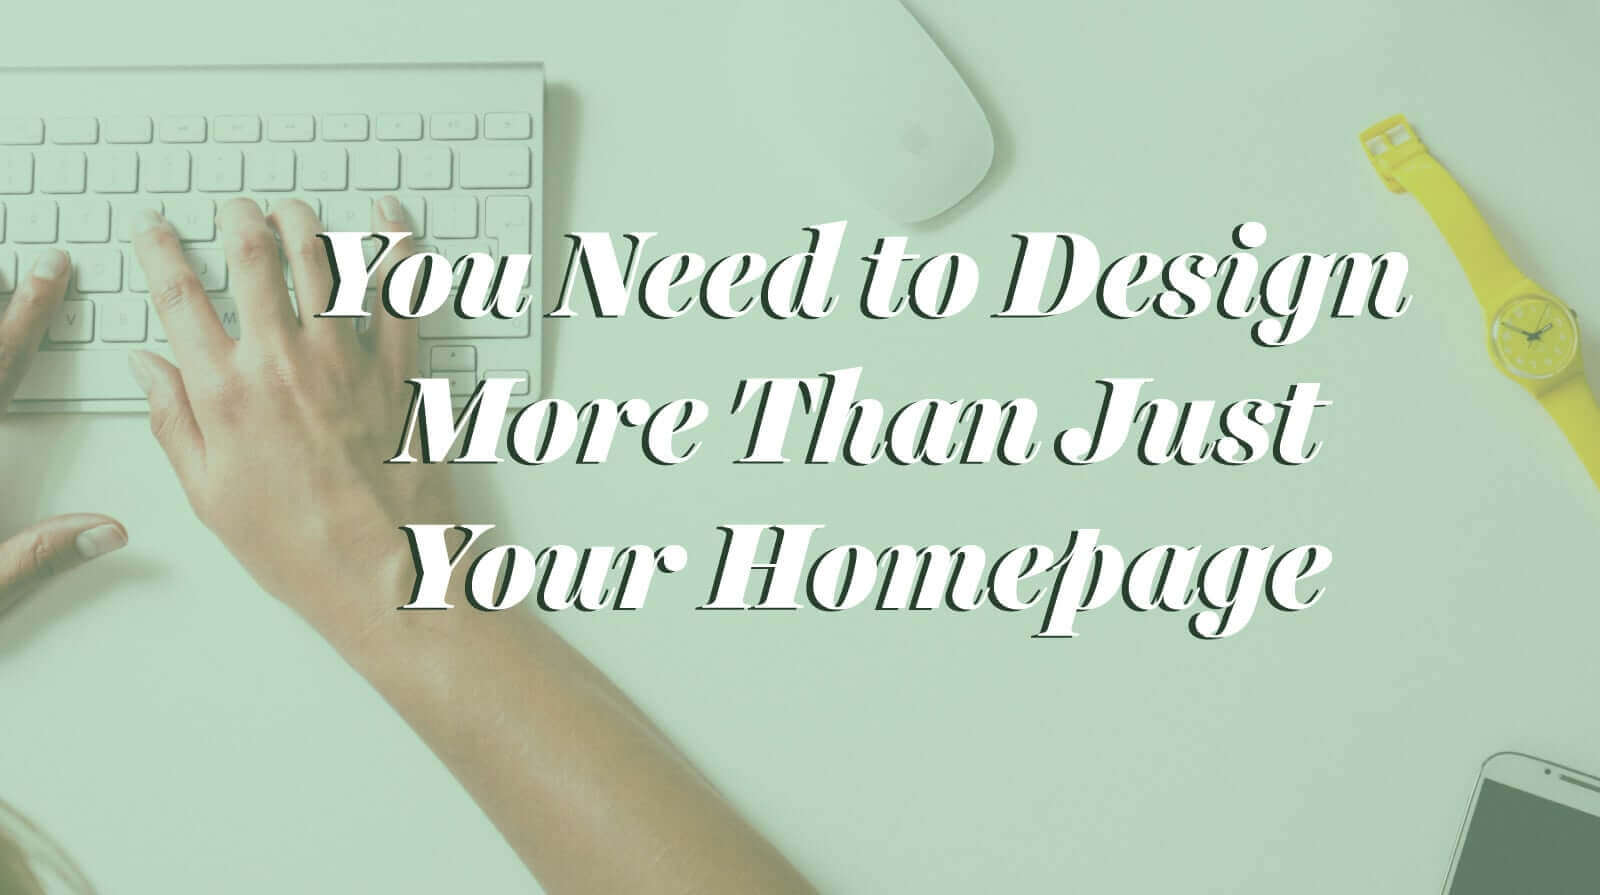 You Need to Design More Than Just Your Homepage